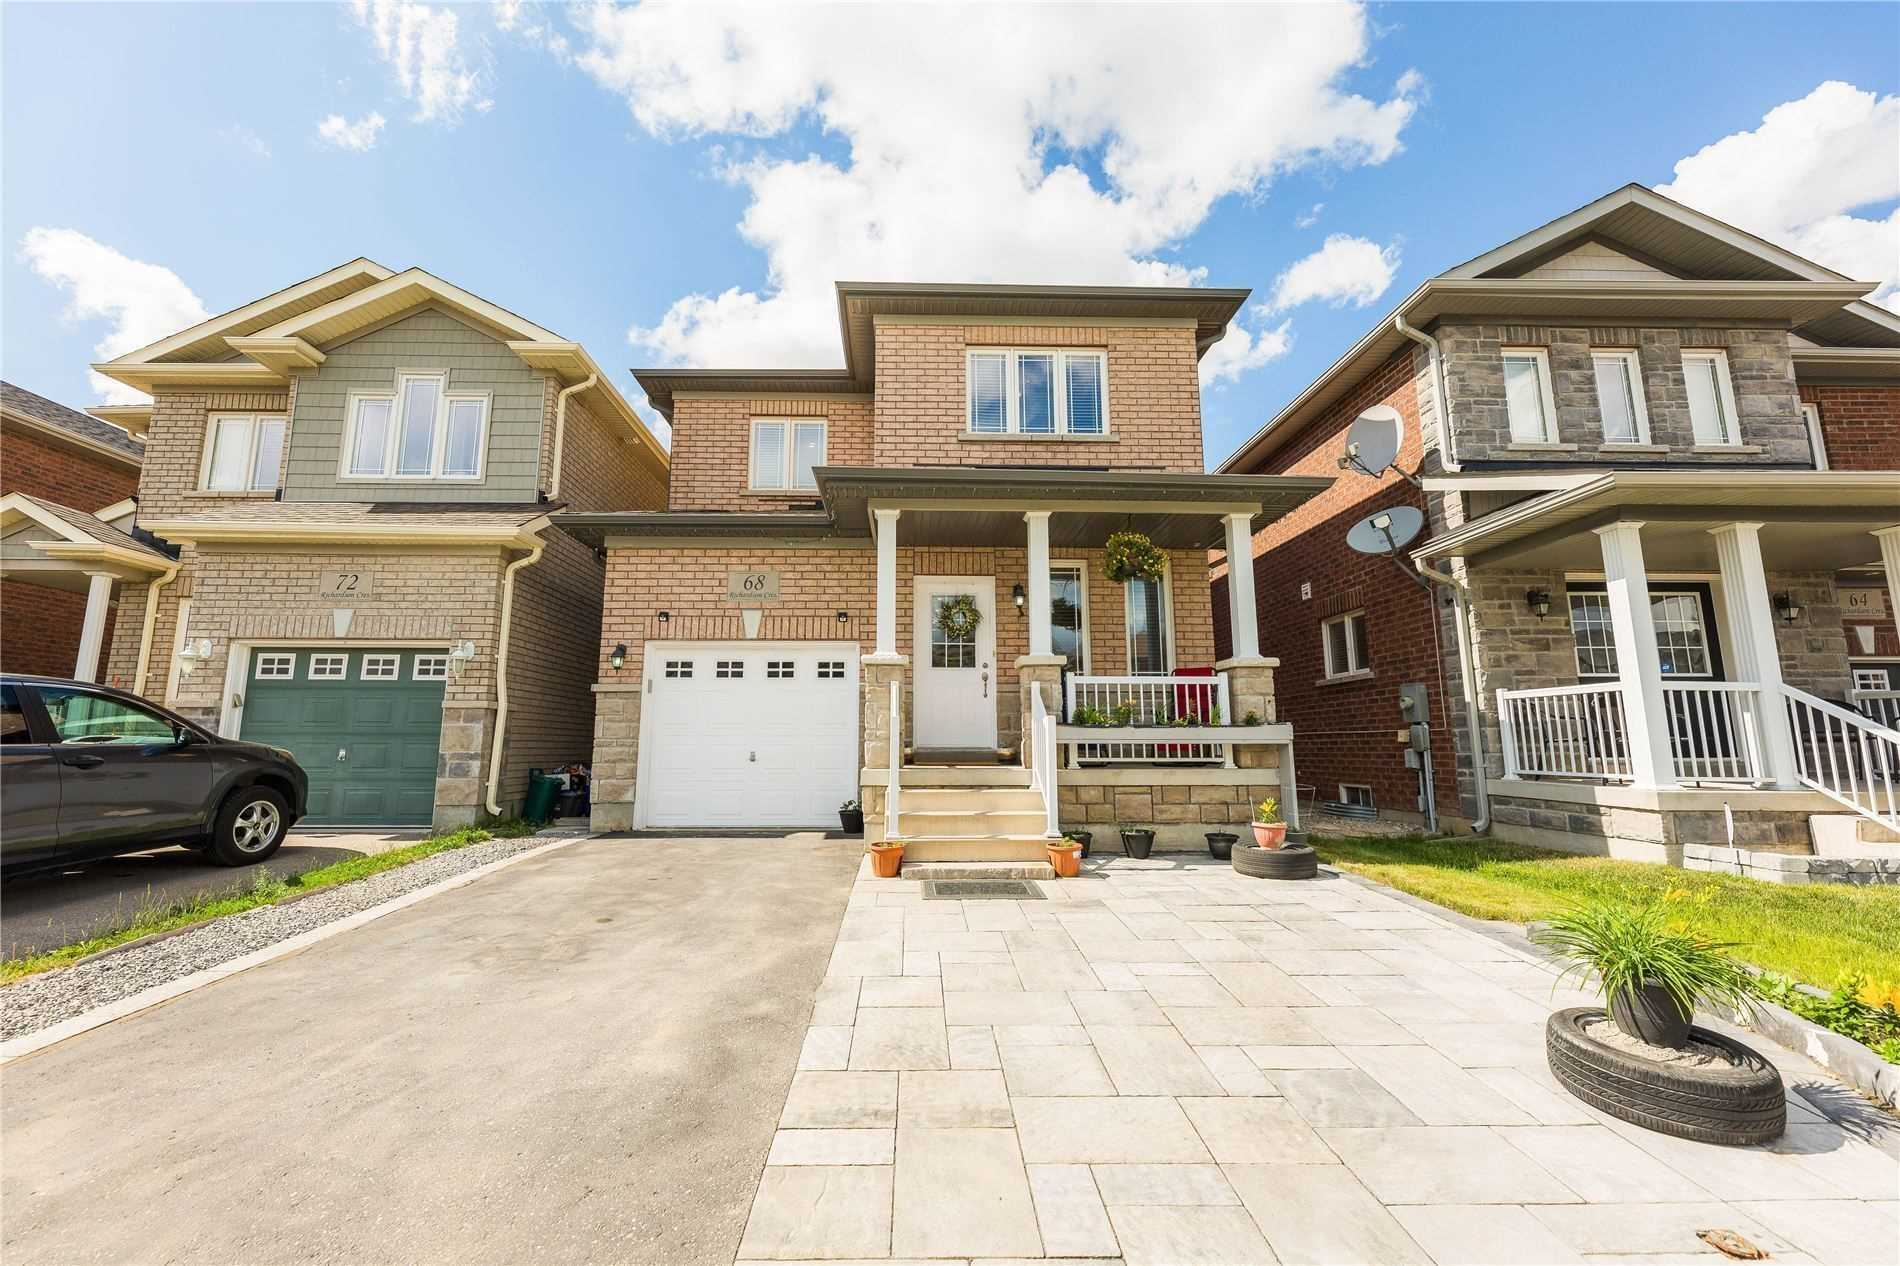 Detached house For Sale In Bradford West Gwillimbury - 68 Richardson Cres, Bradford West Gwillimbury, Ontario, Canada L3Z 0L6 , 3 Bedrooms Bedrooms, ,4 BathroomsBathrooms,Detached,For Sale,Richardson